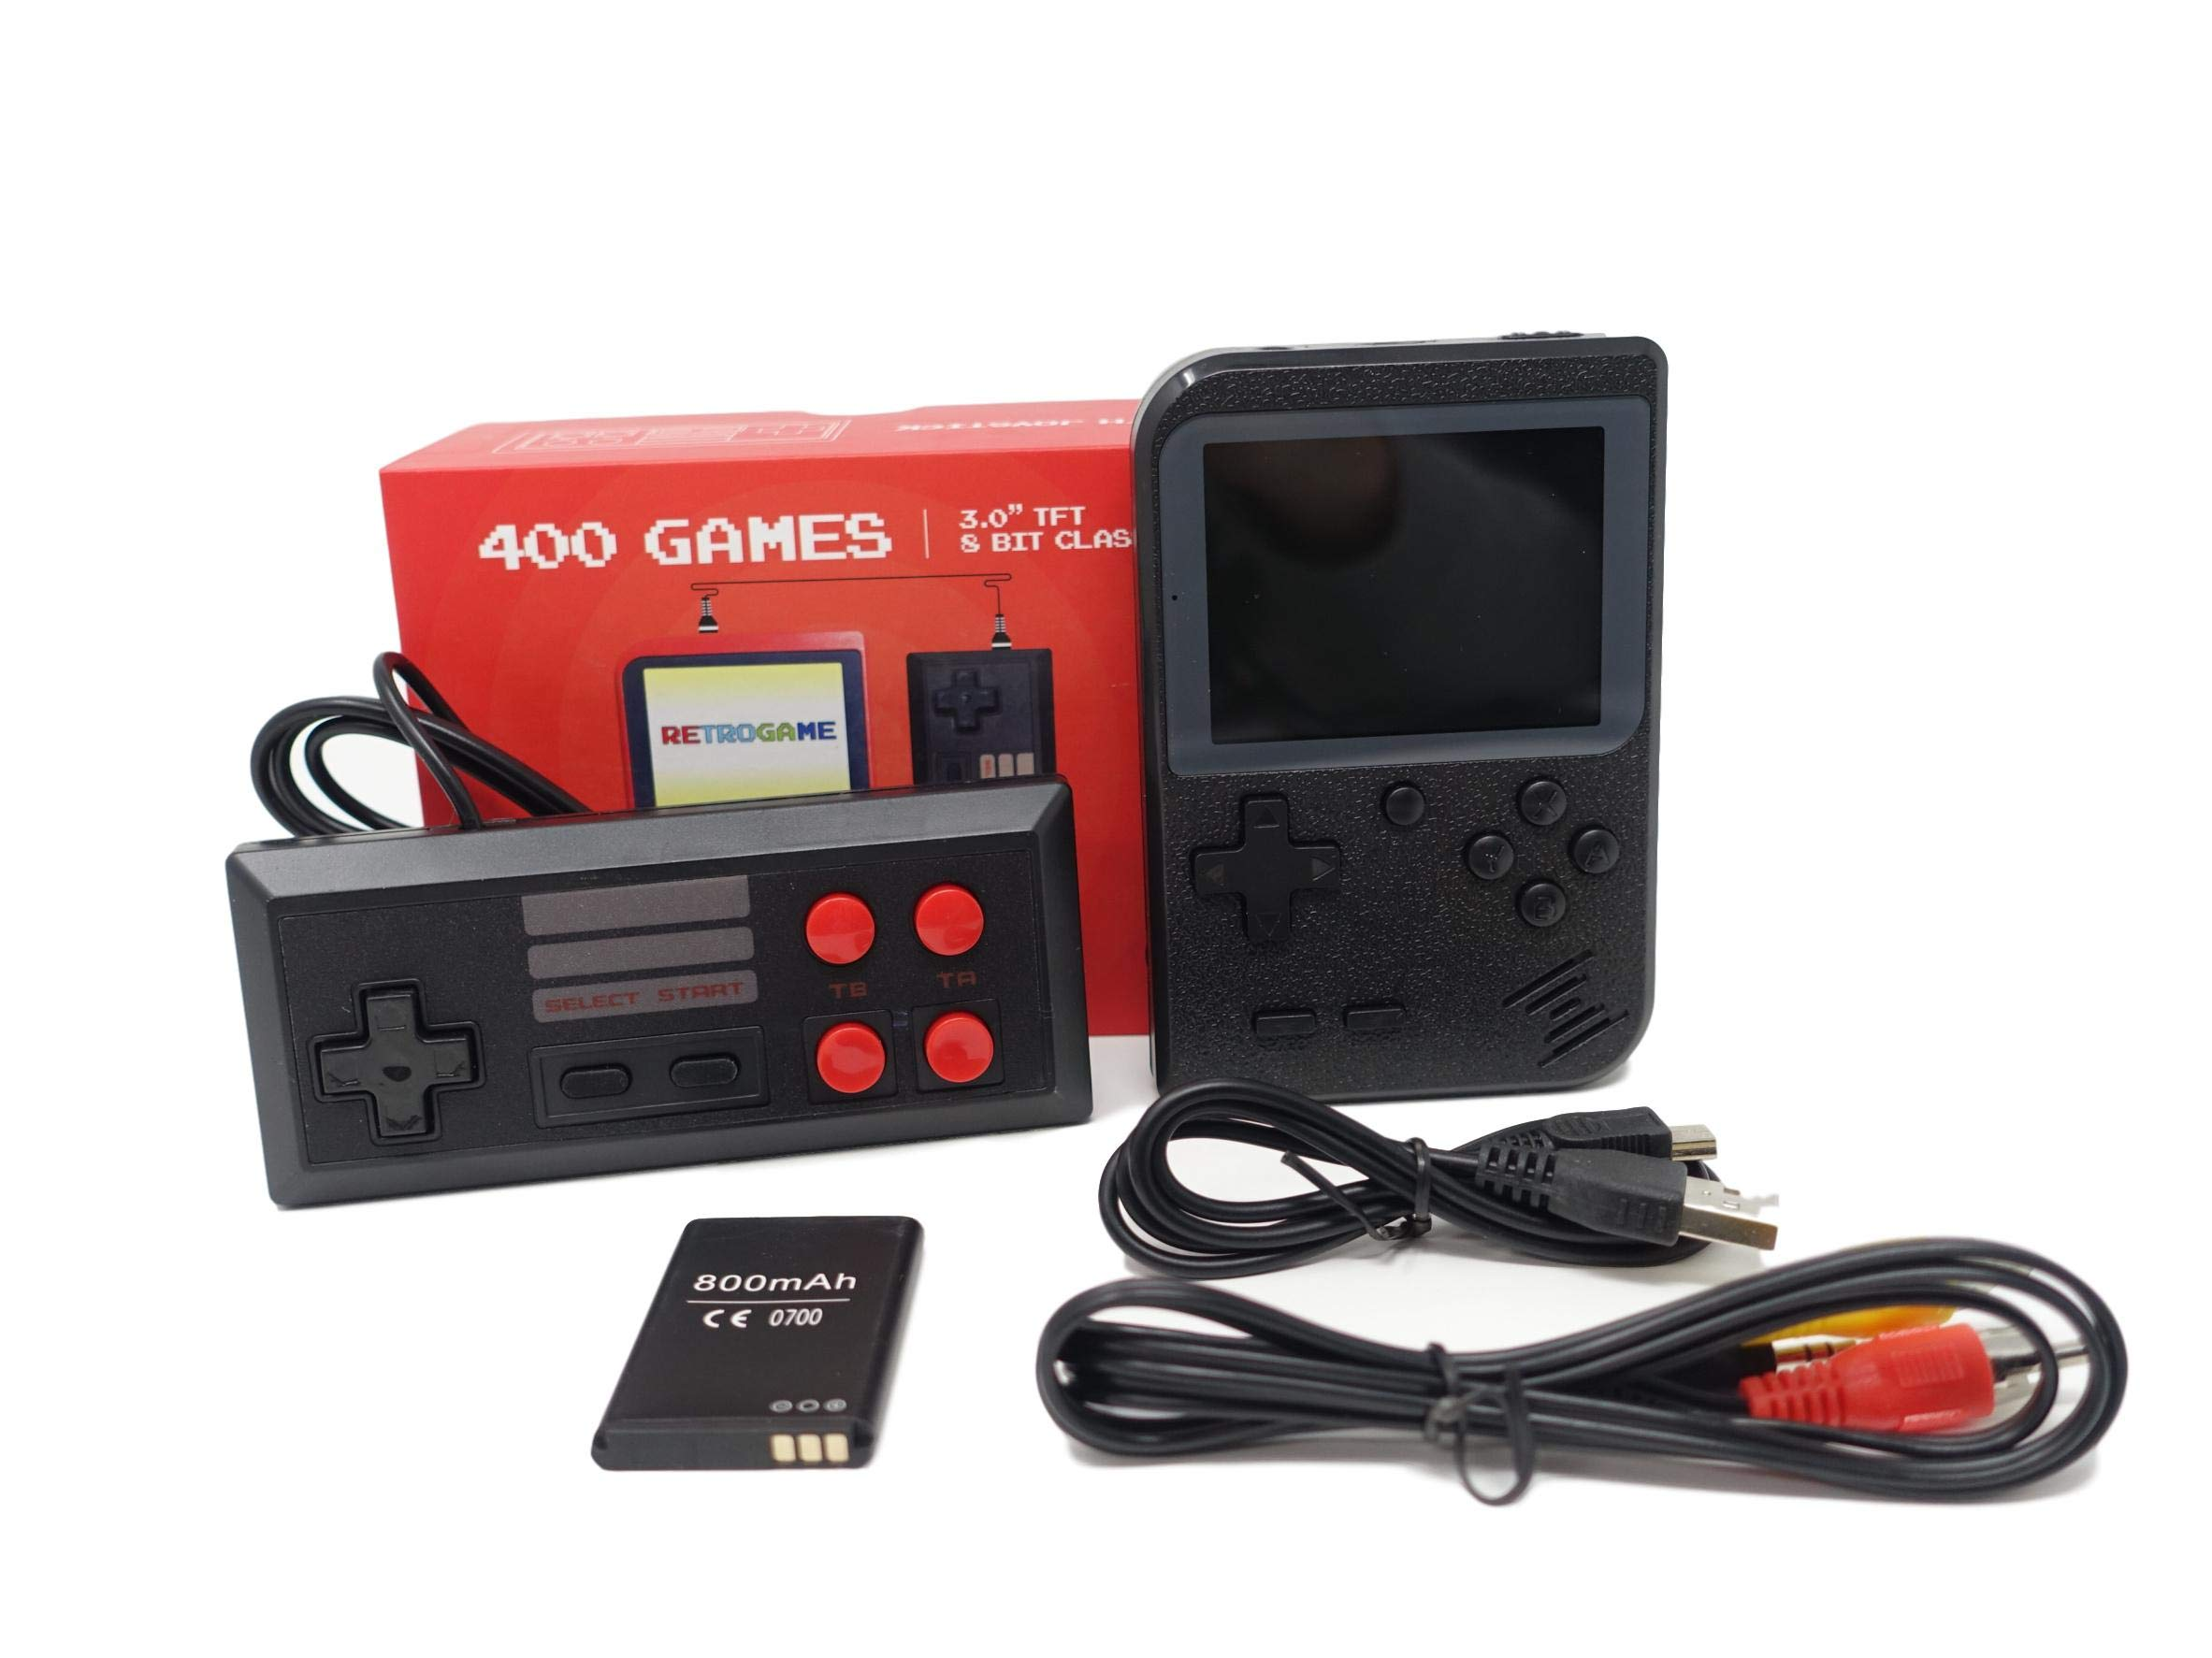 Vsuppliesonline Retro Handheld Game Console FC System Plus Extra Joystick Portable Mini Controller 400 Classic Game Console 3 Inch Support TV 2 Player Present for Boy Kids Adult by Vsuppliesonline (Image #1)